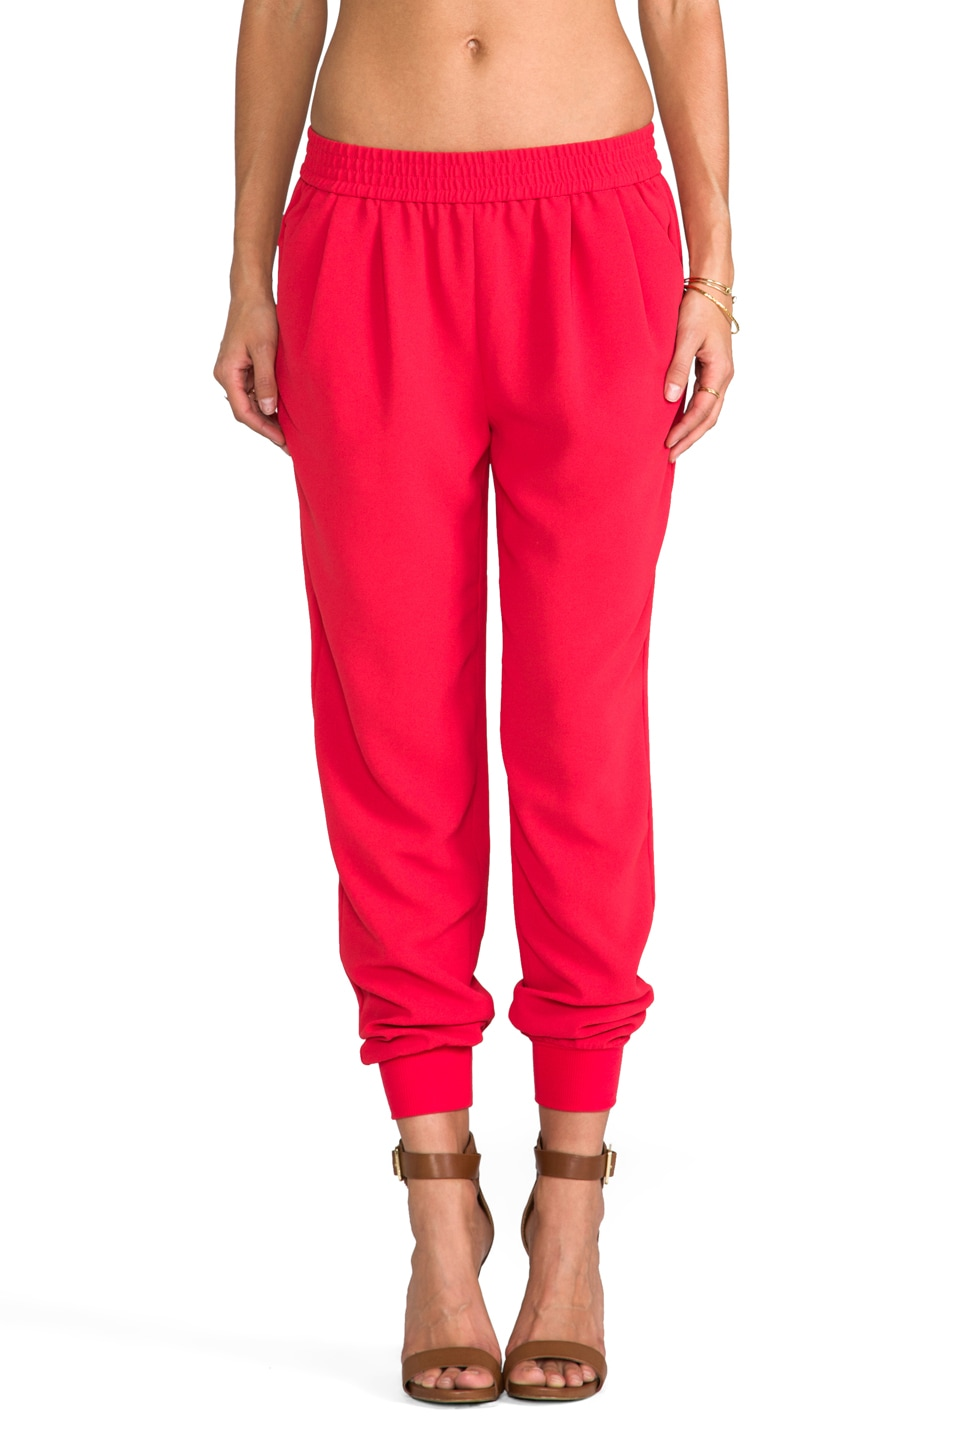 Joie Mariner Pants in Carnelian